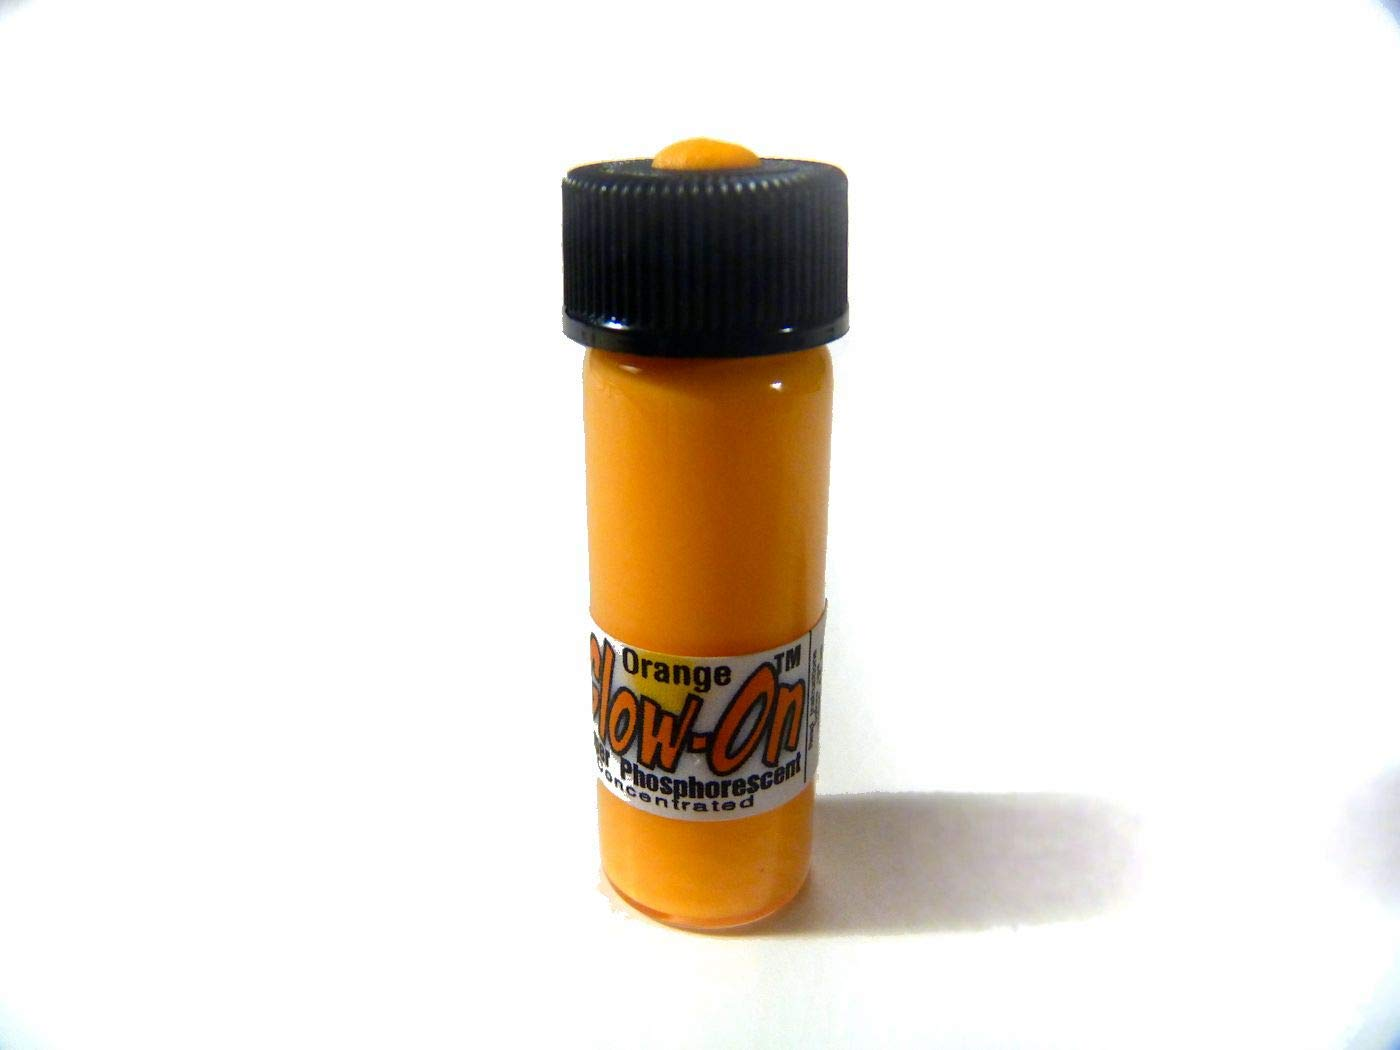 GLOW-ON Orange Sherbet Color, Super Phosphorescent Gun Night Sights Paint, Medium Size 4.6 Ml Vial. Gold standard of glow paints.Super bright long lasting glow.